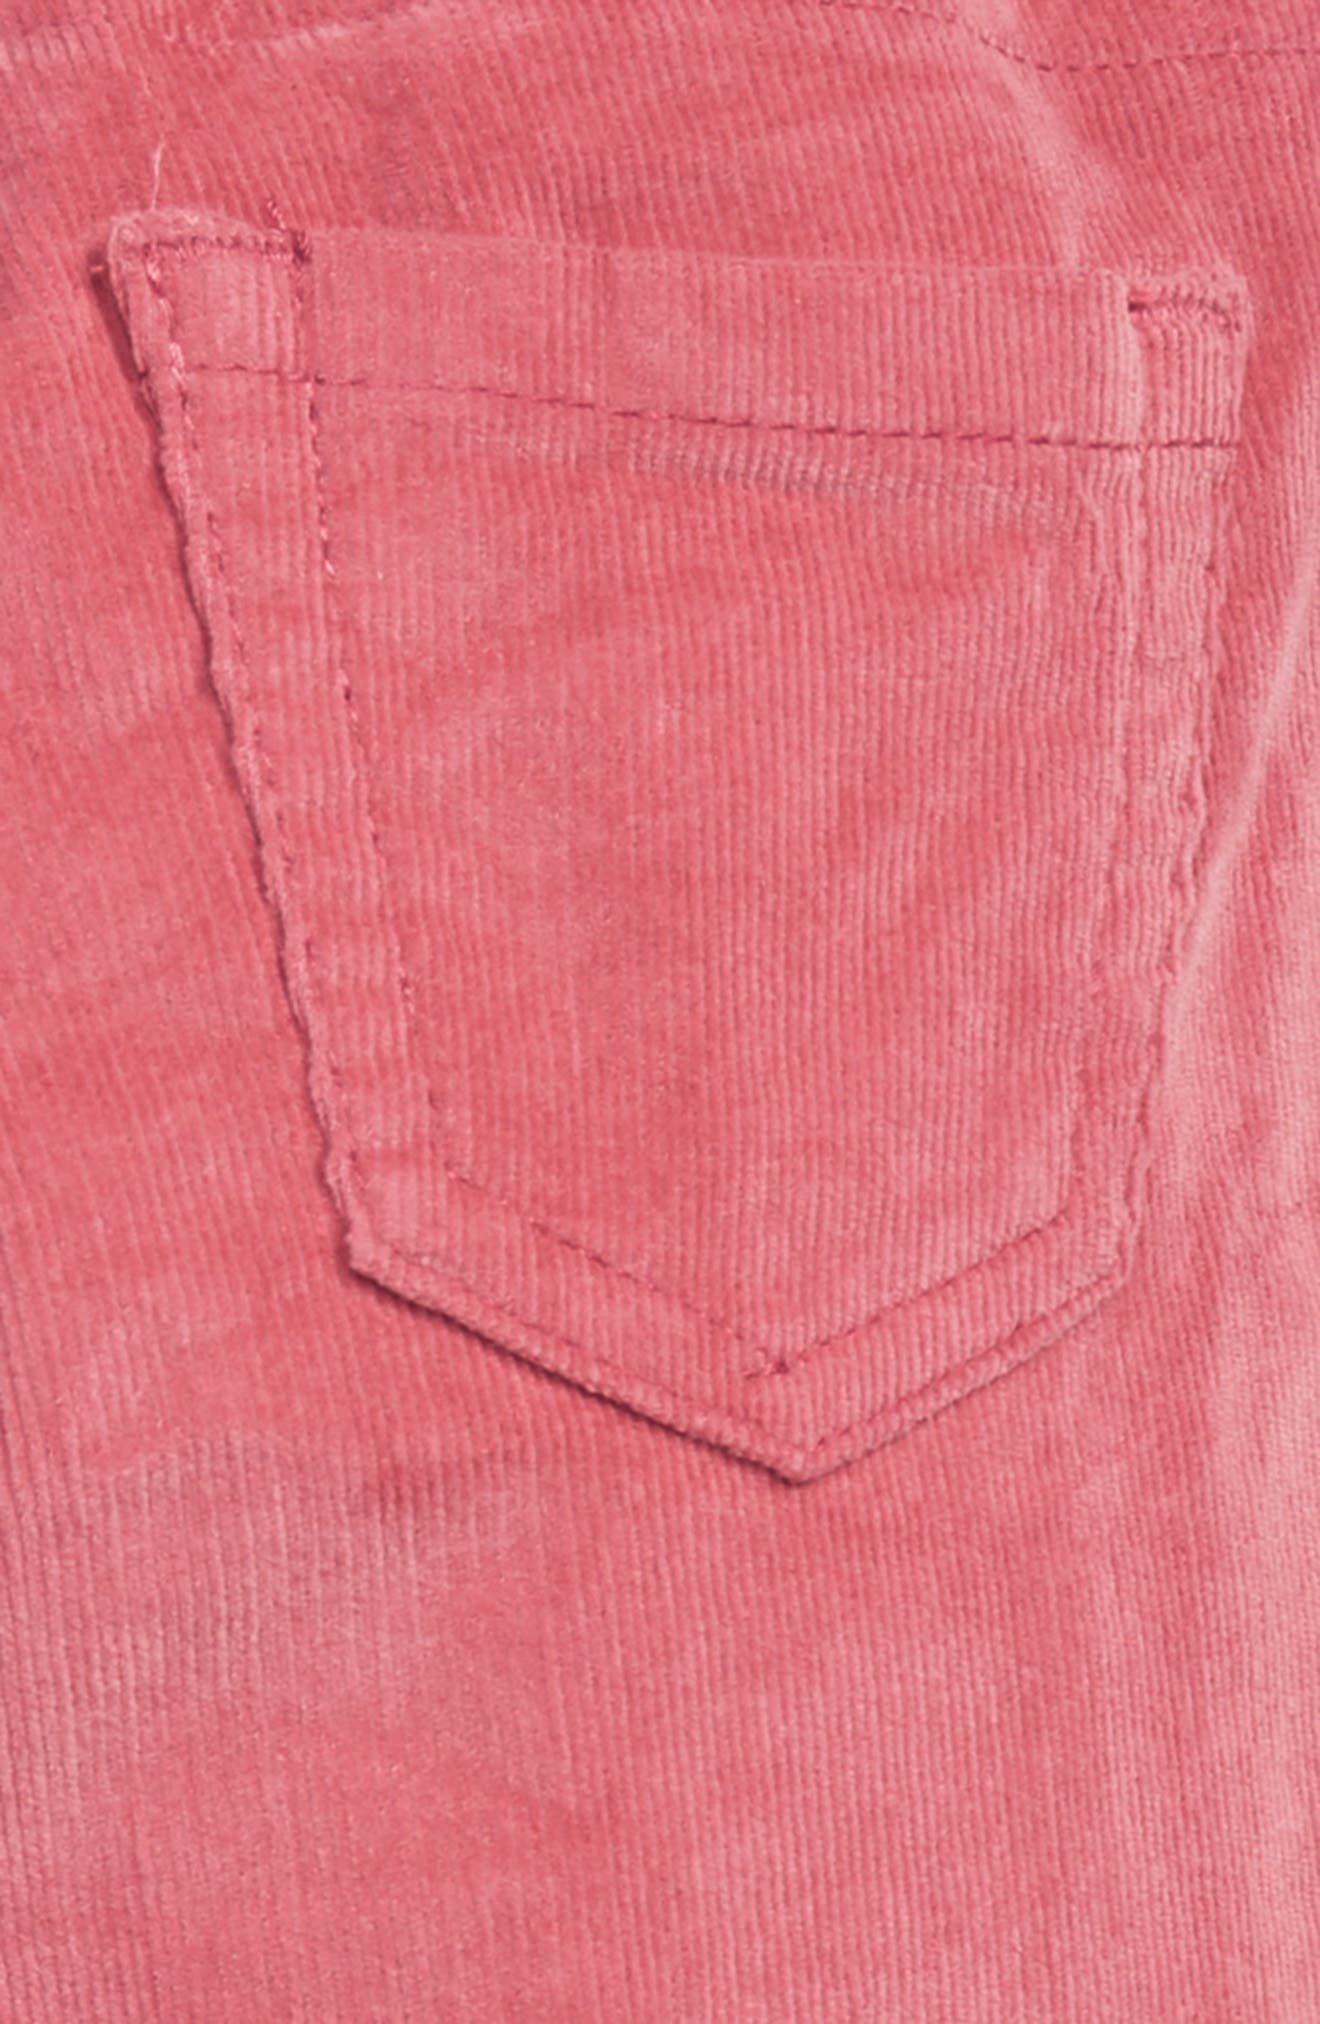 Corduroy Leggings,                             Alternate thumbnail 3, color,                             ROSE PINK